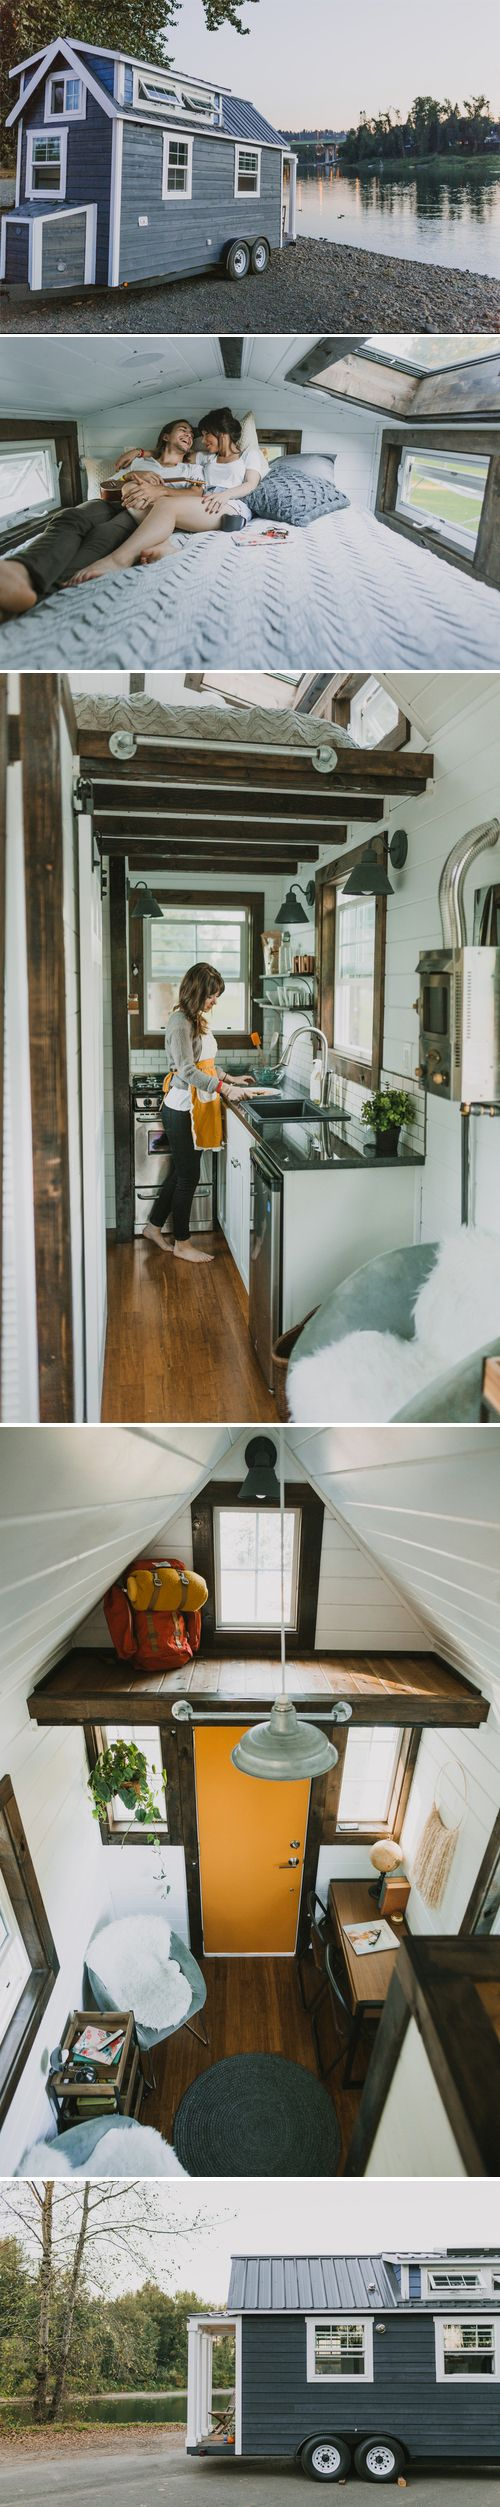 Tiny house built by Heirloom Custom Tiny Homes in Oregon.